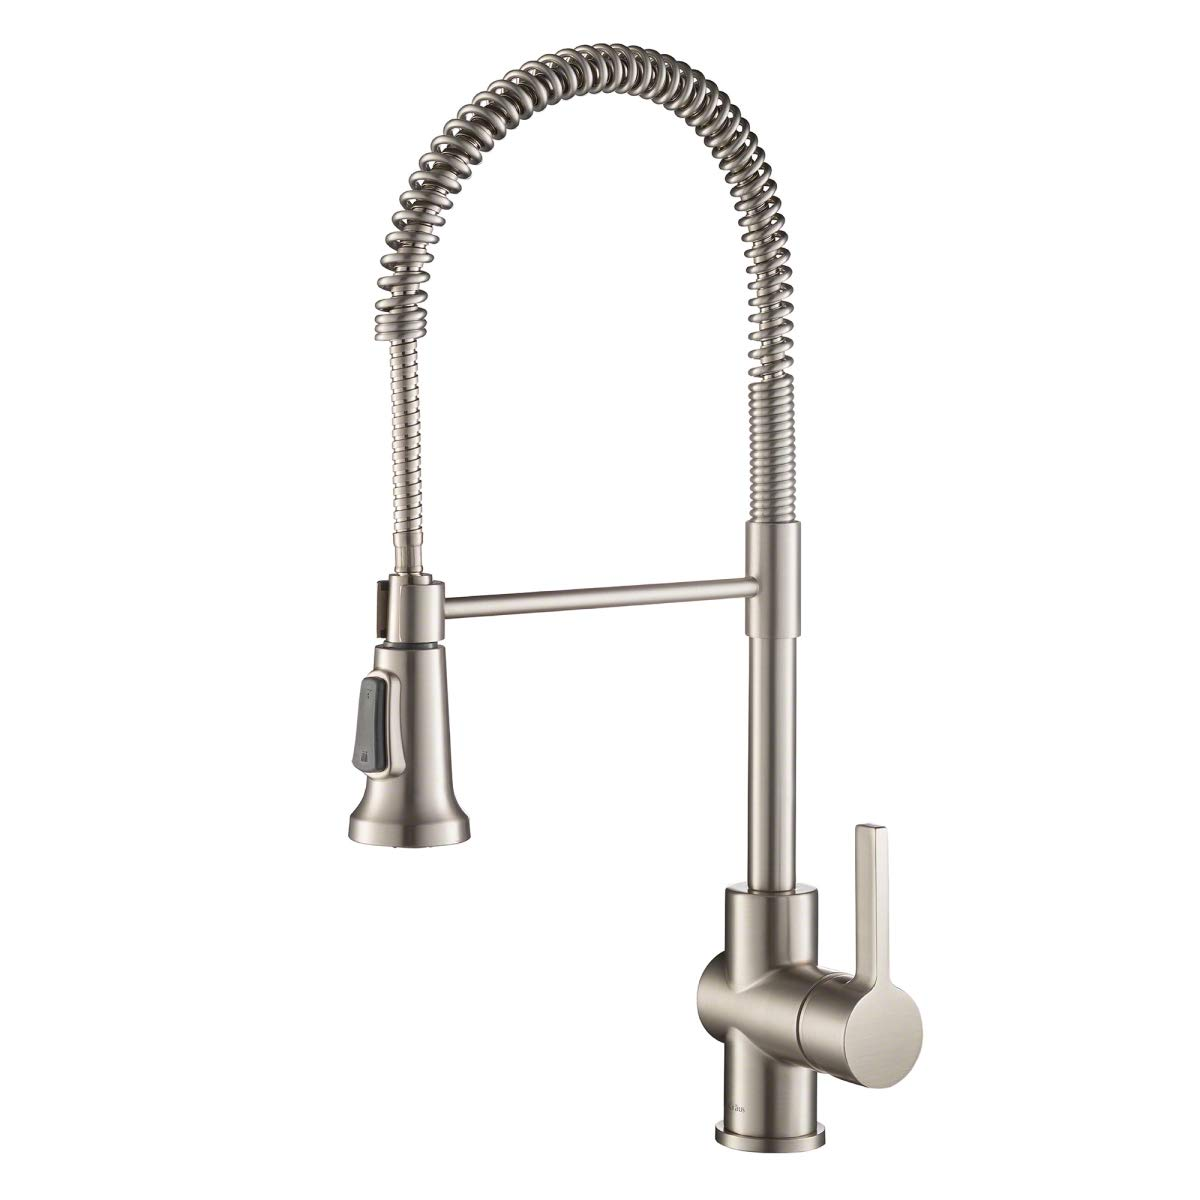 Kraus Britt Spot Free Stainless Pre-Rinse/Commercial Kitchen Faucet with Dual Function Sprayhead in all-Brite Finish, KPF-1690SFS by Kraus (Image #1)